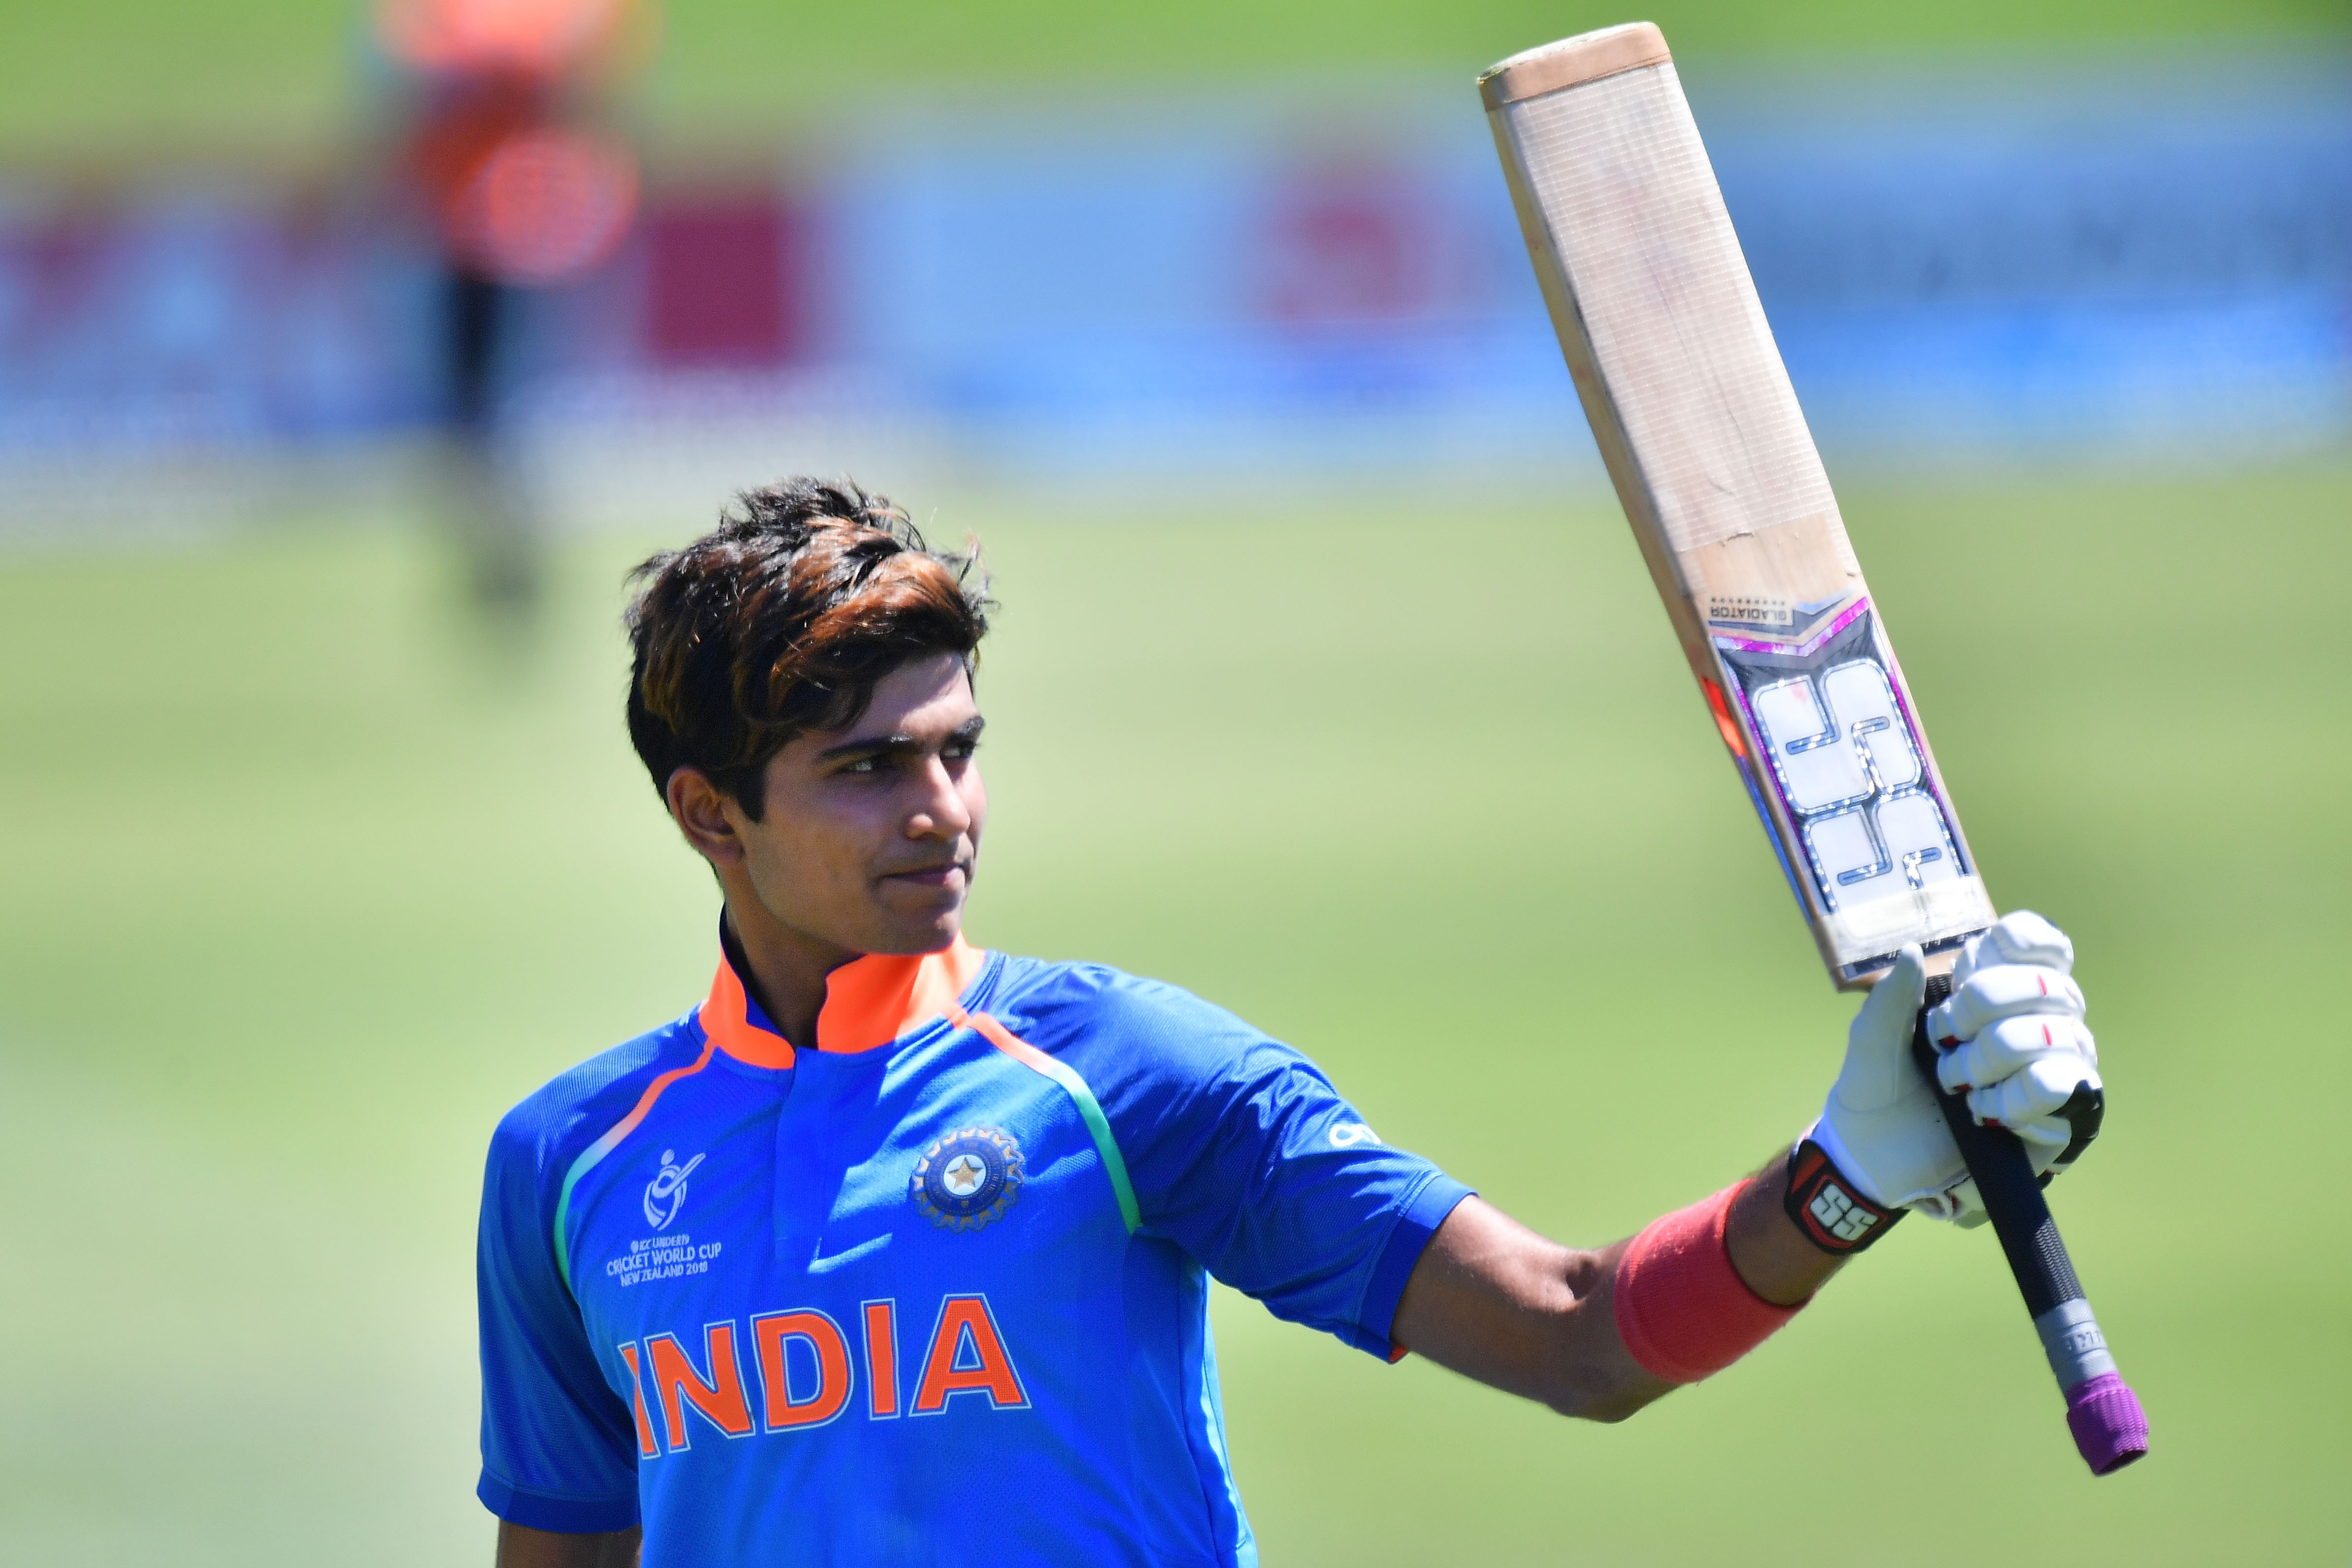 Shubman Gill (MARTY MELVILLE/AFP/Getty Images)